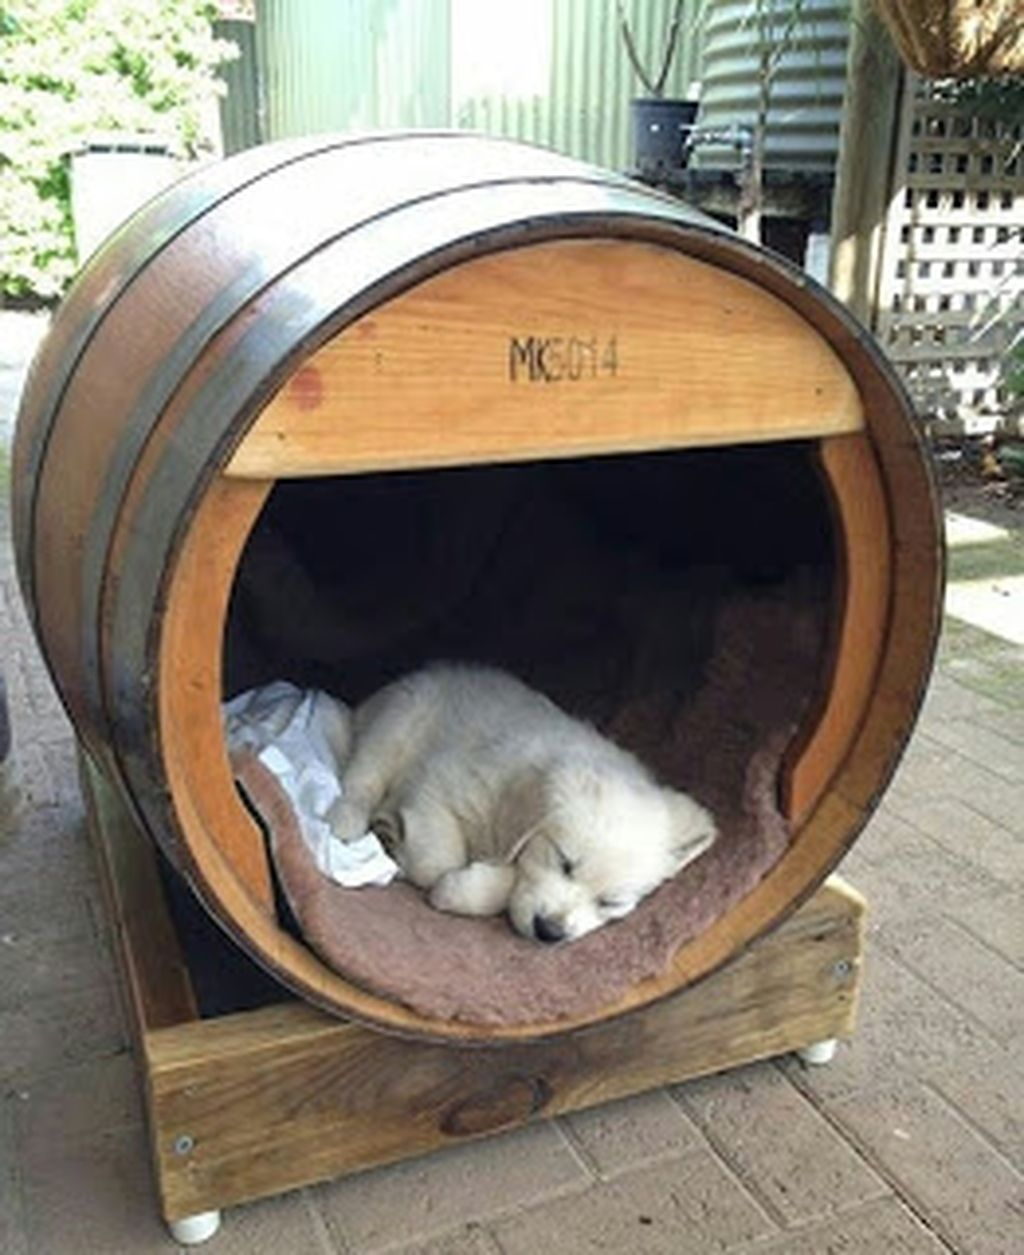 Home Design Ideas For Dogs: 32 Rustic Indoor Dog Houses Design Ideas For Small Dogs To